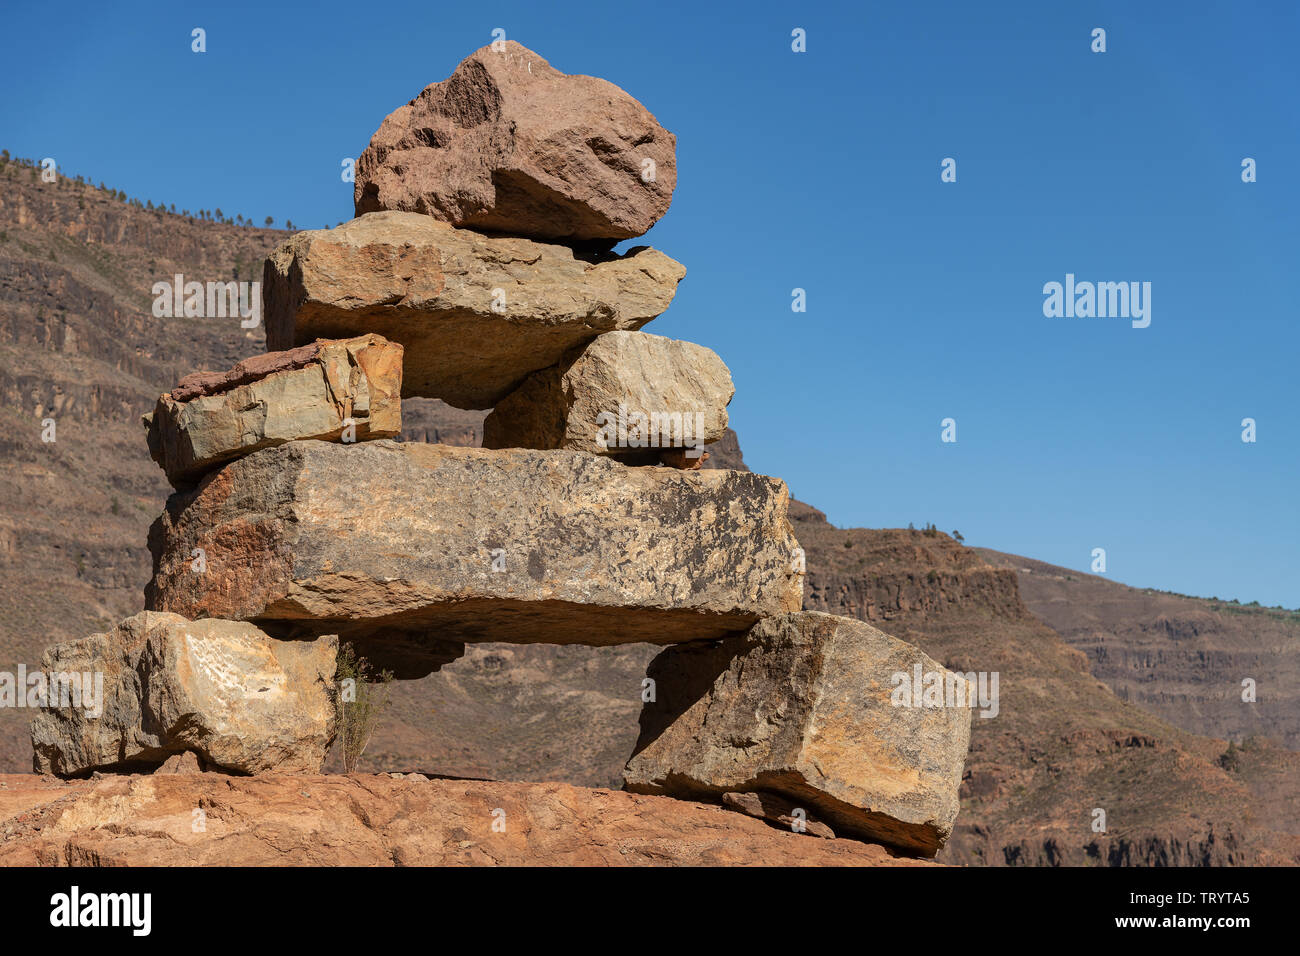 Steinkunst Stock Photos Steinkunst Stock Images Alamy